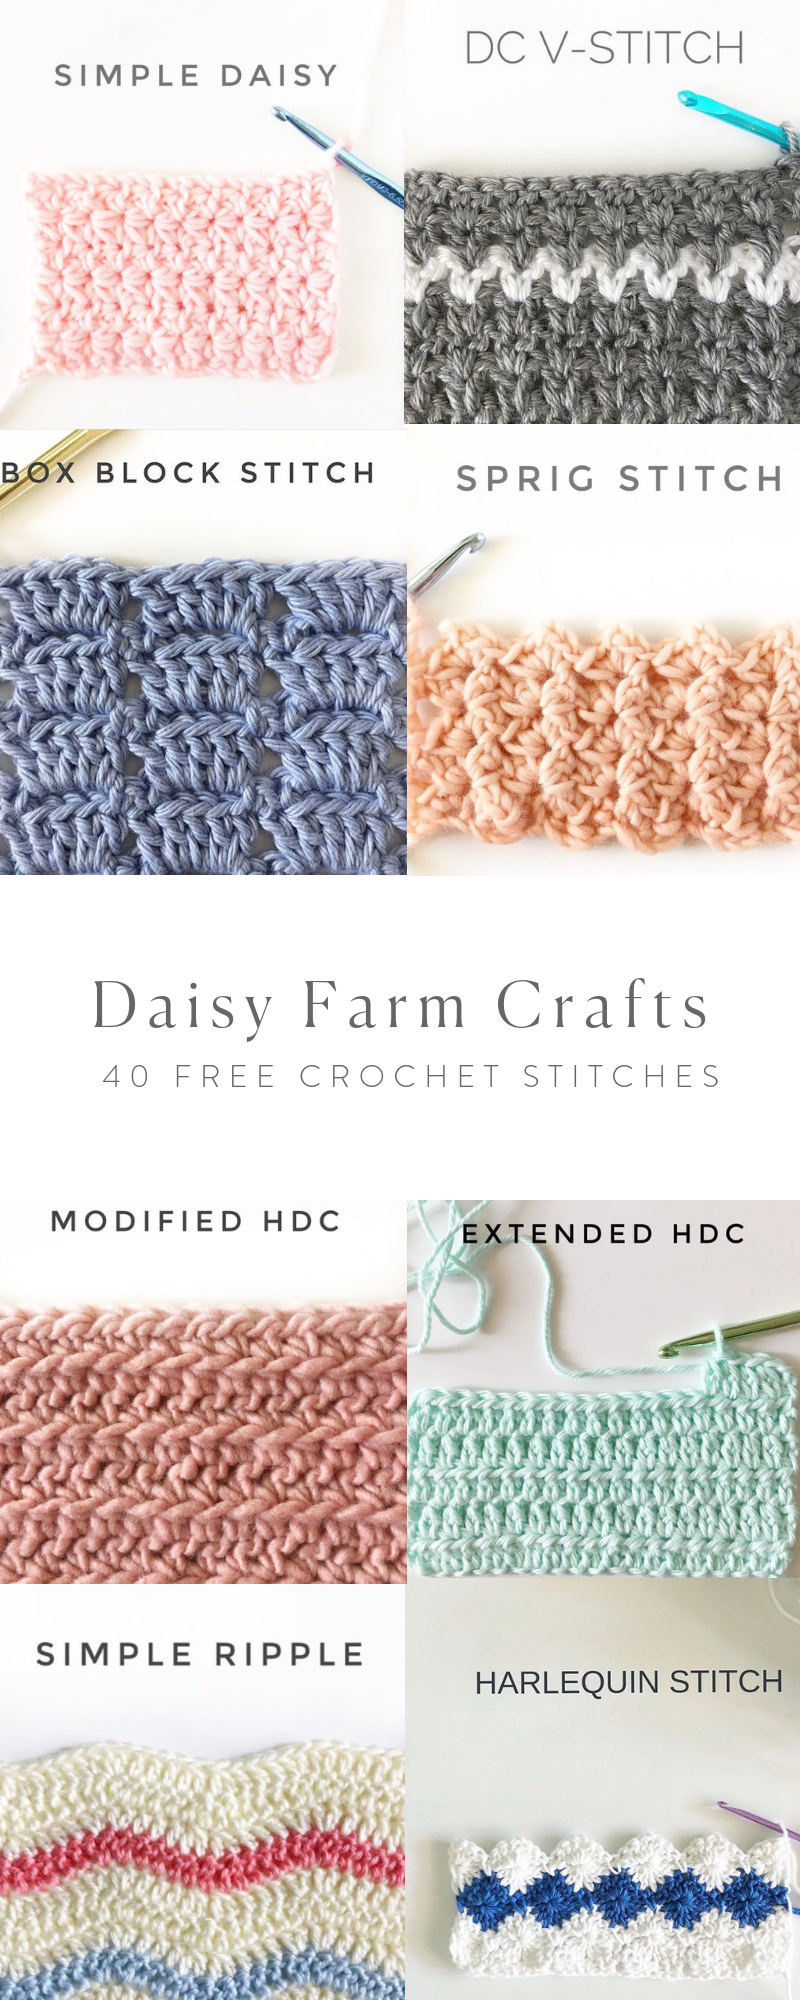 40 Free Crochet Stitches from Daisy Farm Crafts | Crocheting ...